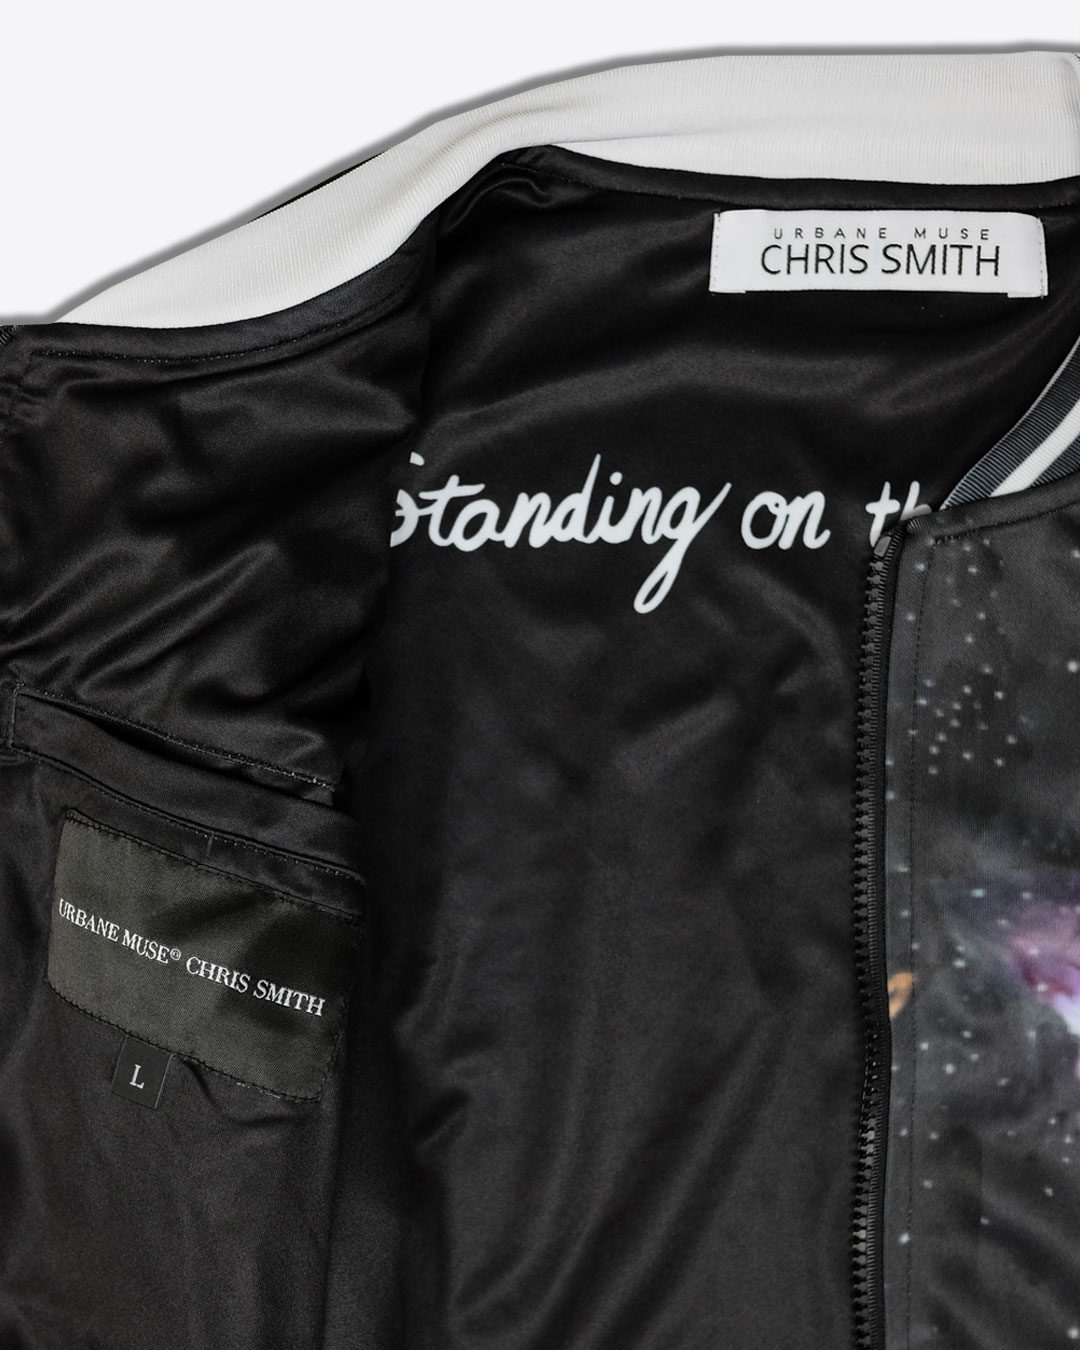 STANDING-ON-THE-PROMISE-photo4-URBANE-MUSE-CHRIS-SMITH-BOMBER-JACKET-with-Lining